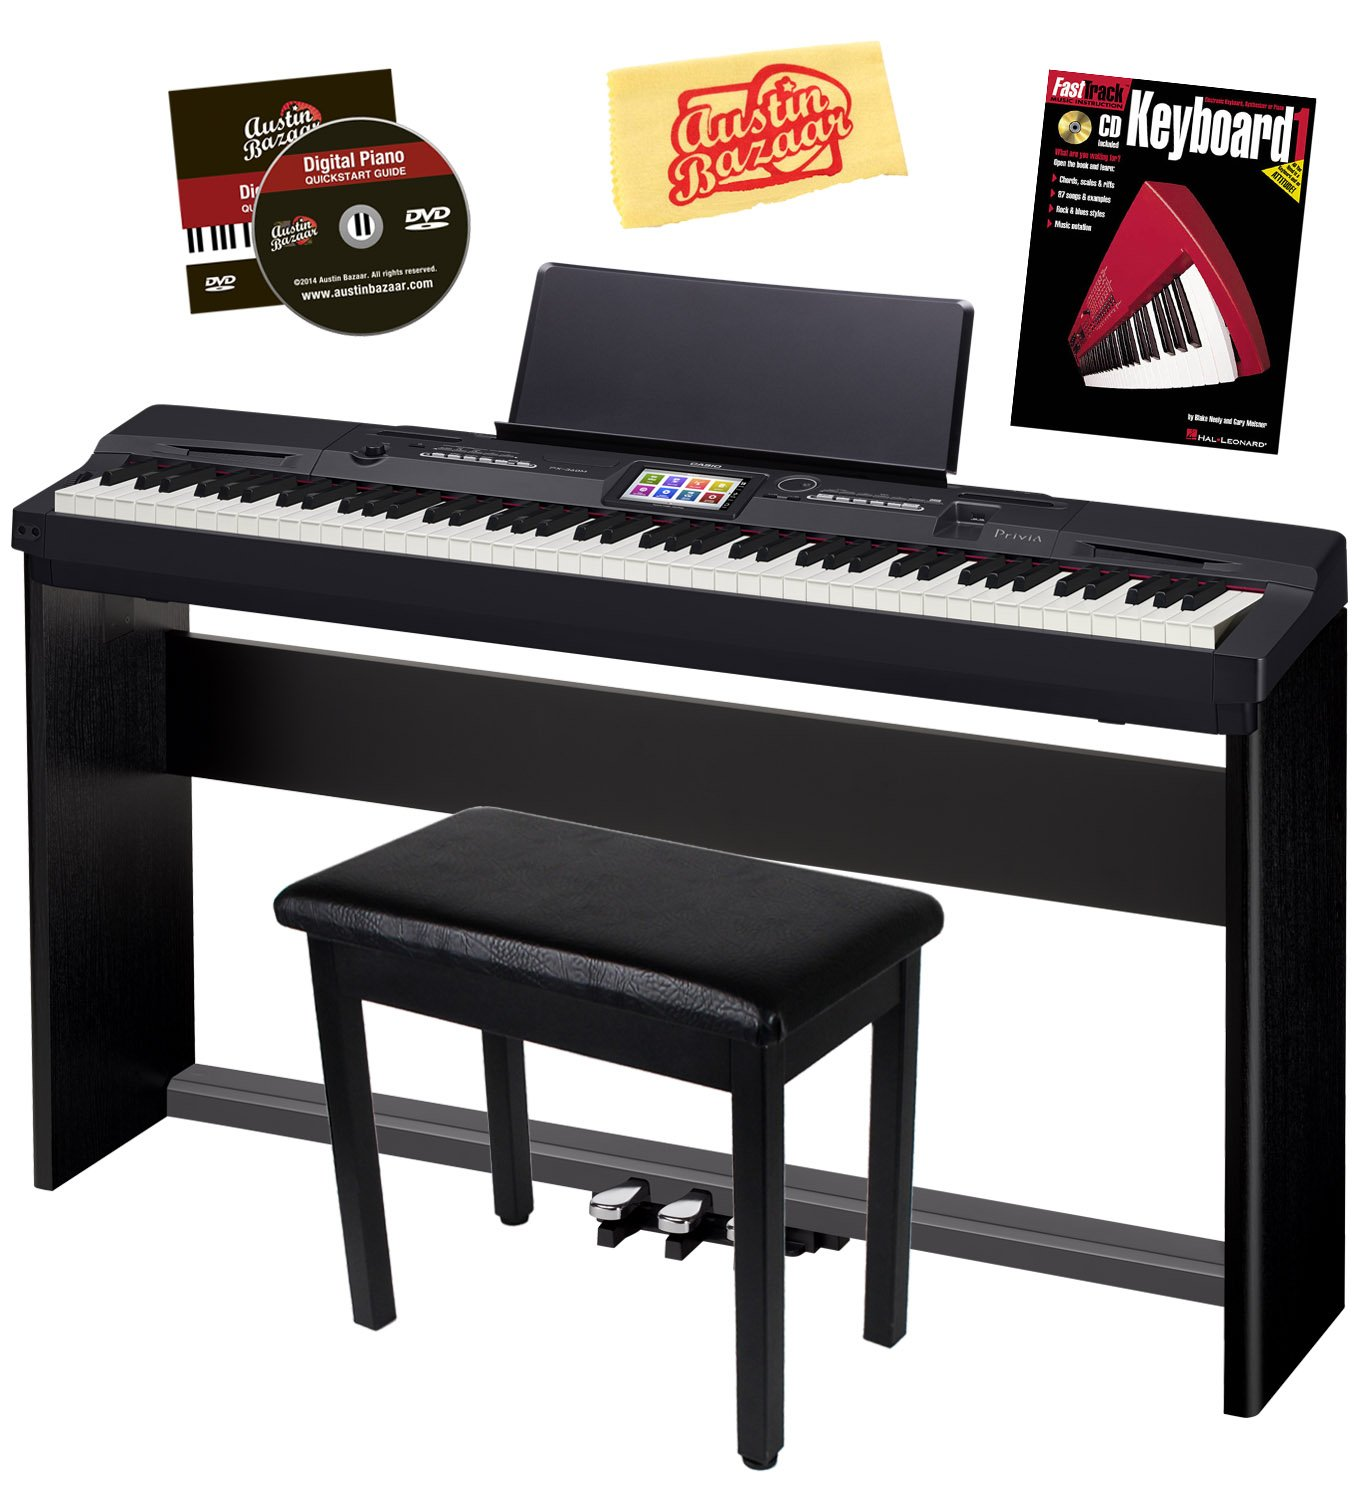 Casio Privia PX-360 Digital Piano - Black Bundle with CS-67 Stand, SP-33 Pedal, Furniture Bench, Instructional Book, Austin Bazaar Instructional DVD, and Polishing Cloth